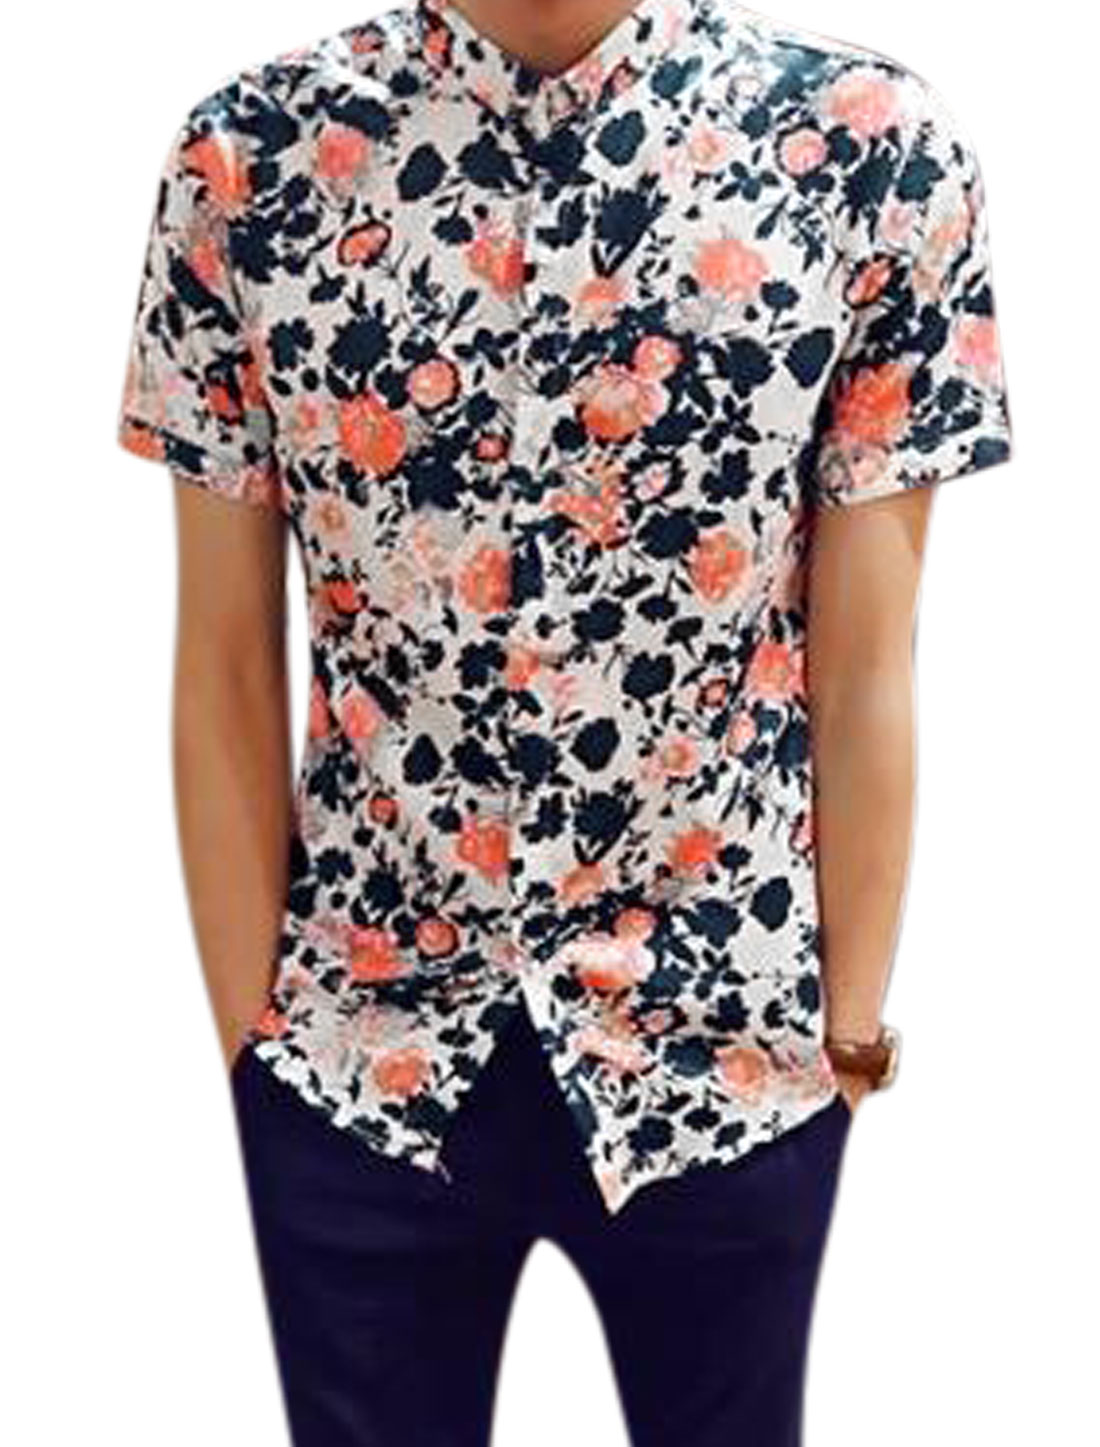 Man Flower Prints Point Collar Short Sleeves Leisure Shirt Navy Blue S